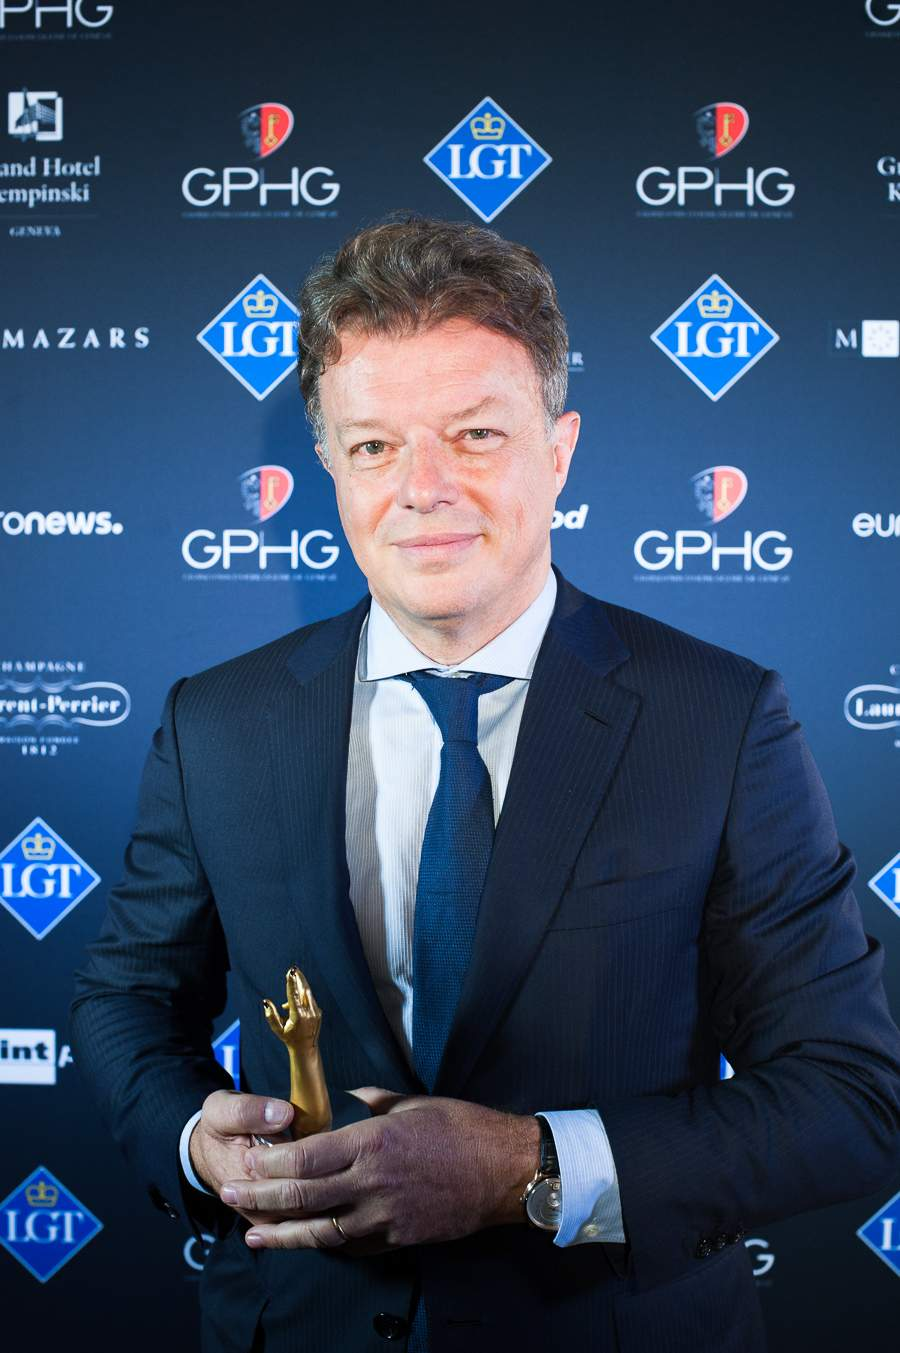 Nicolas Beau, Directeur International Horlogerie et Joaillerie of Chanel, winner of the Ladies' Watch Prize 2018